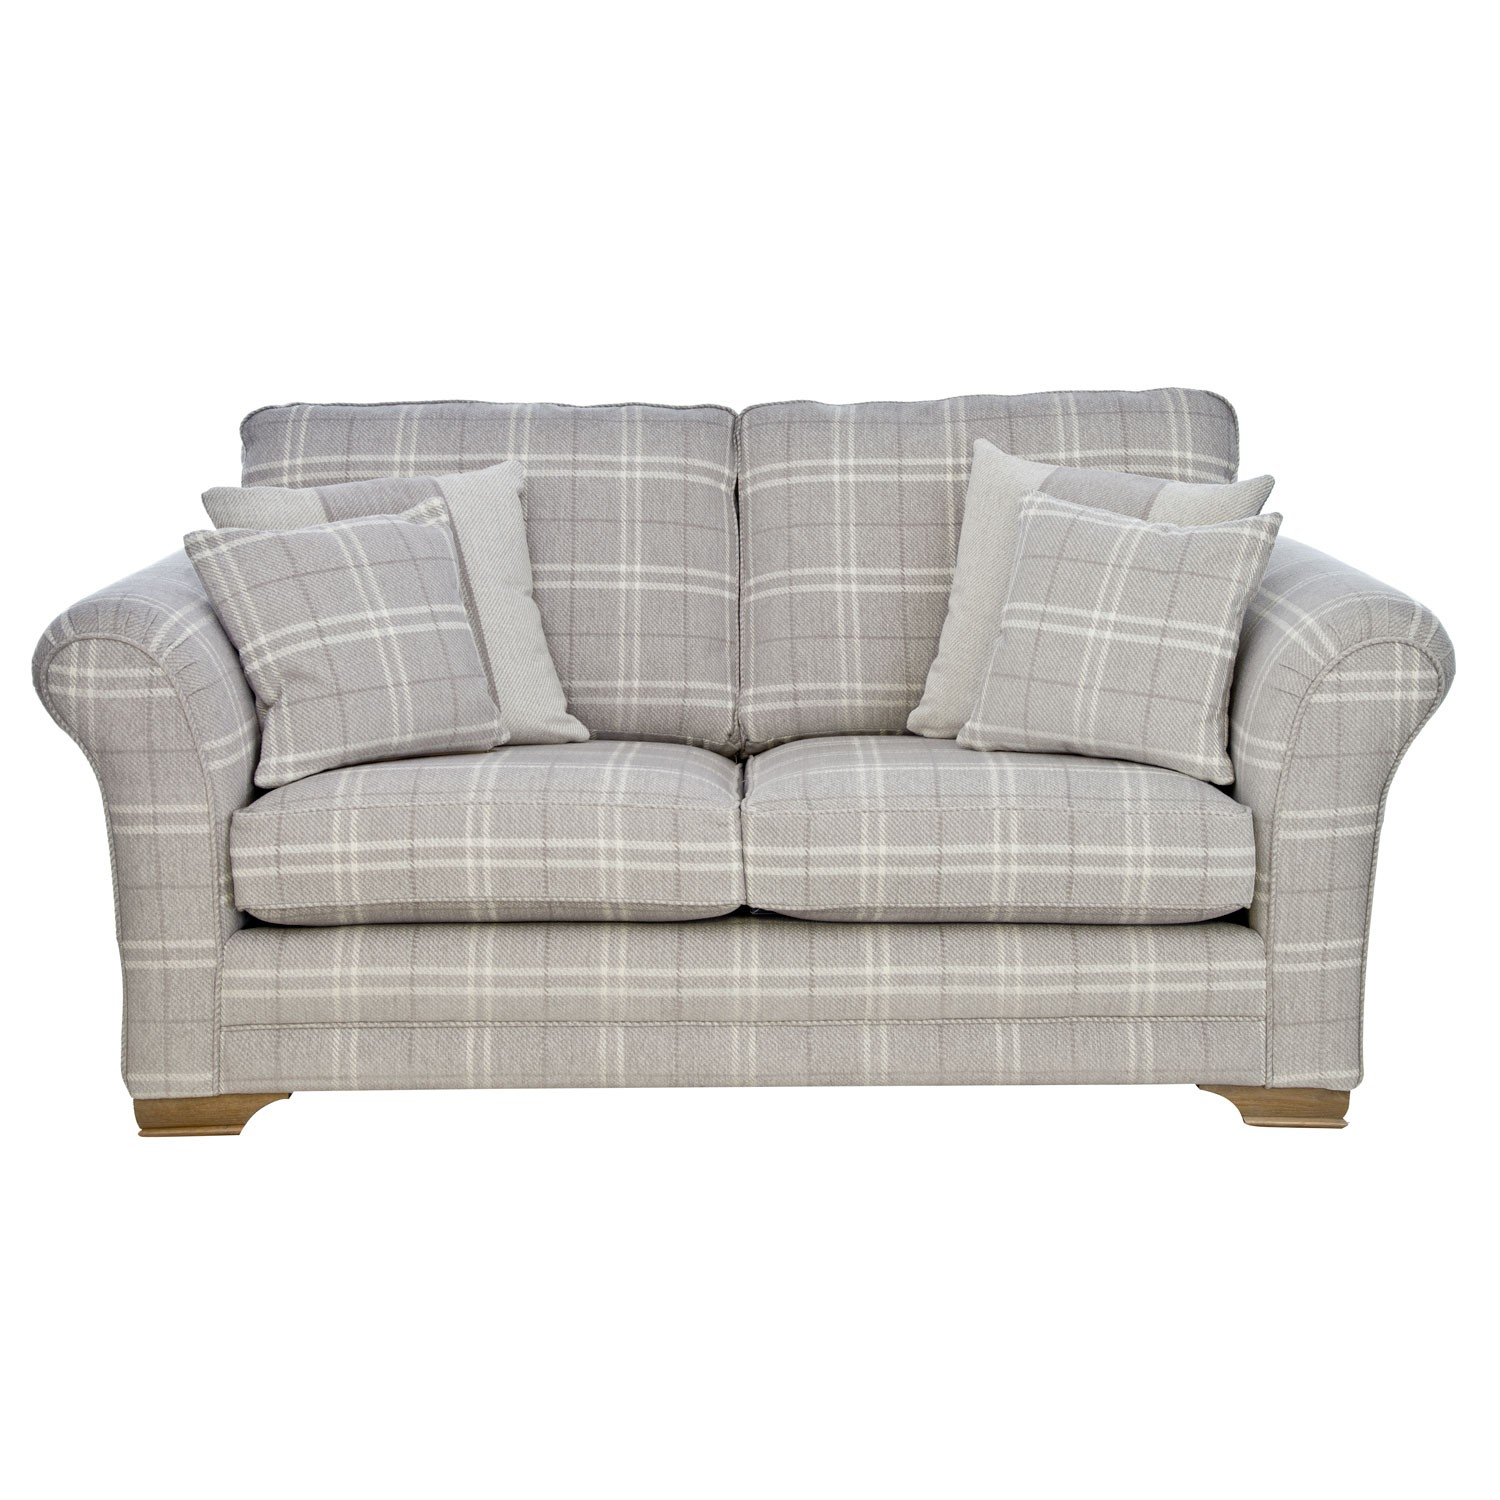 Casa Georgia Two Seater Fabric Sofa Small